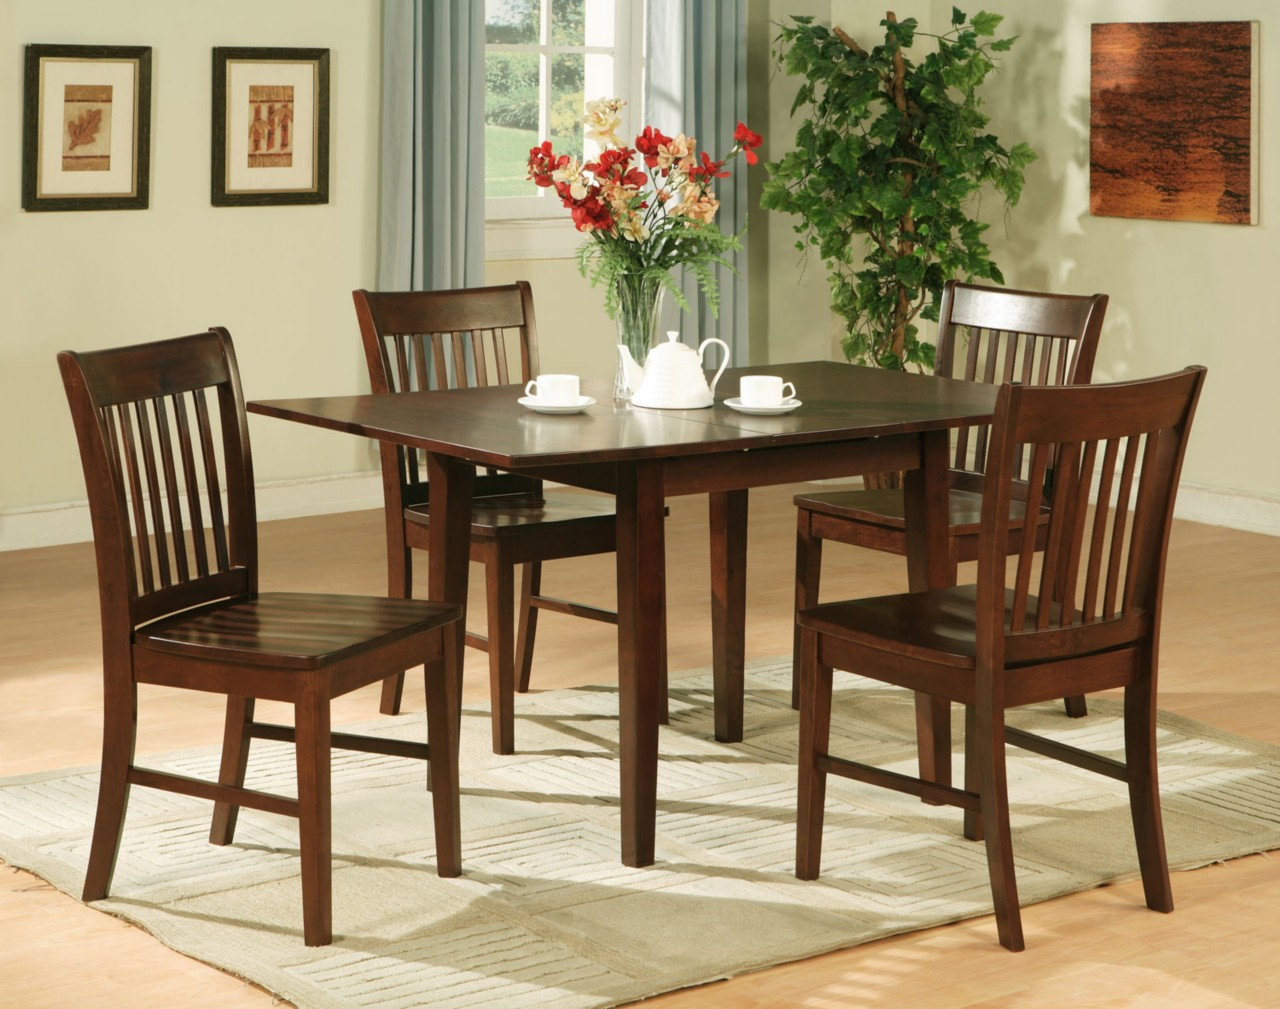 Jaclyn Smith Patio Furniture The Recommended Brand Custom Home